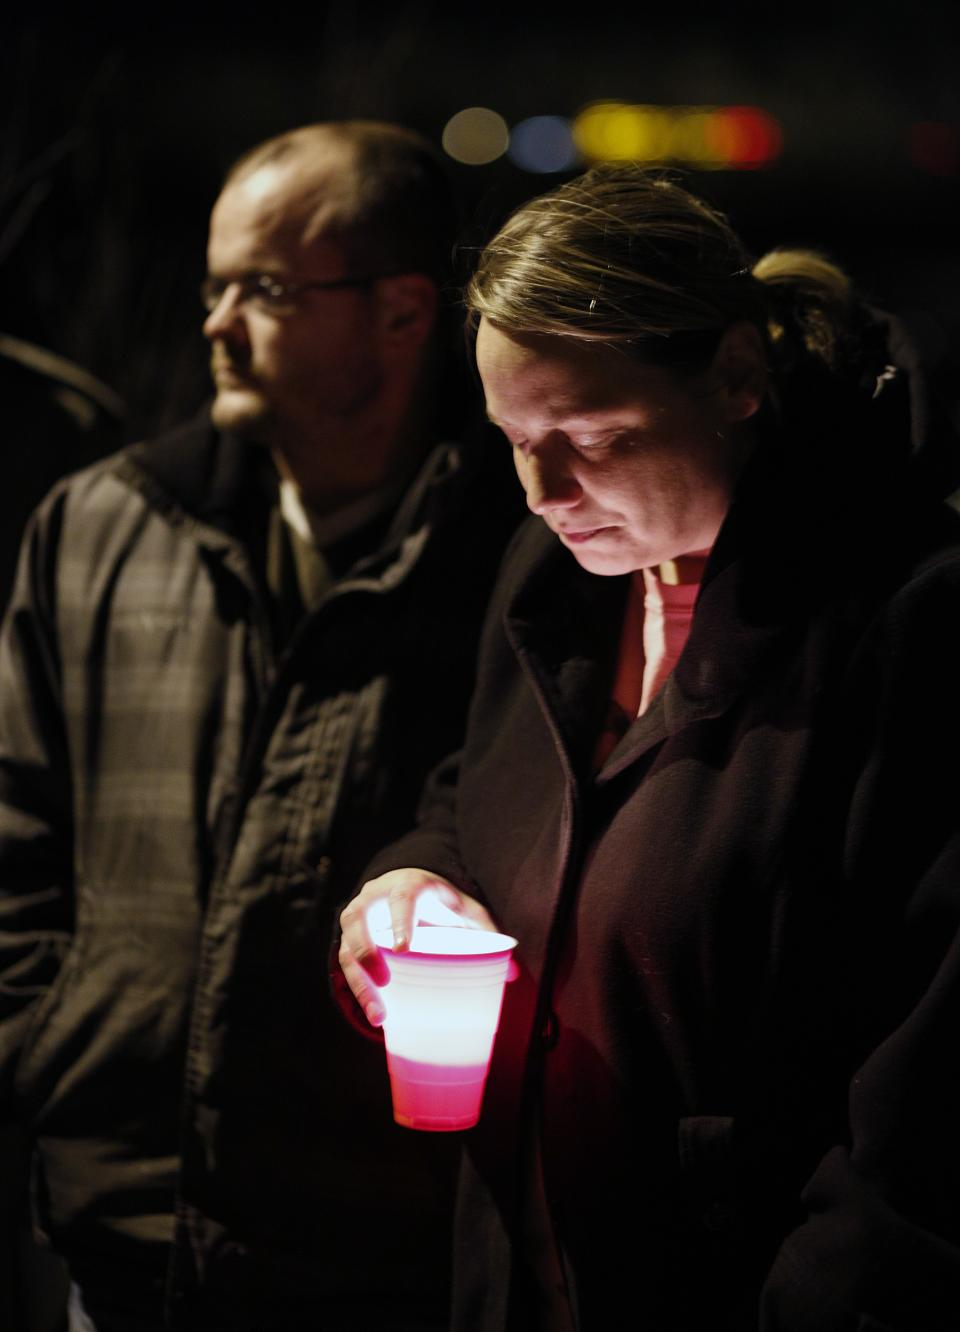 Sarah Curl family friend speaks out during a vigil held at Meyers lake Wednesday, Dec. 5, 2012, in Evansdale, Iowa.  Hunters discovered two bodies Wednesday believed to be the young Iowa cousins who vanished five months ago while riding their bikes, authorities said. (AP Photo/Waterloo Courier, Matthew Putney)